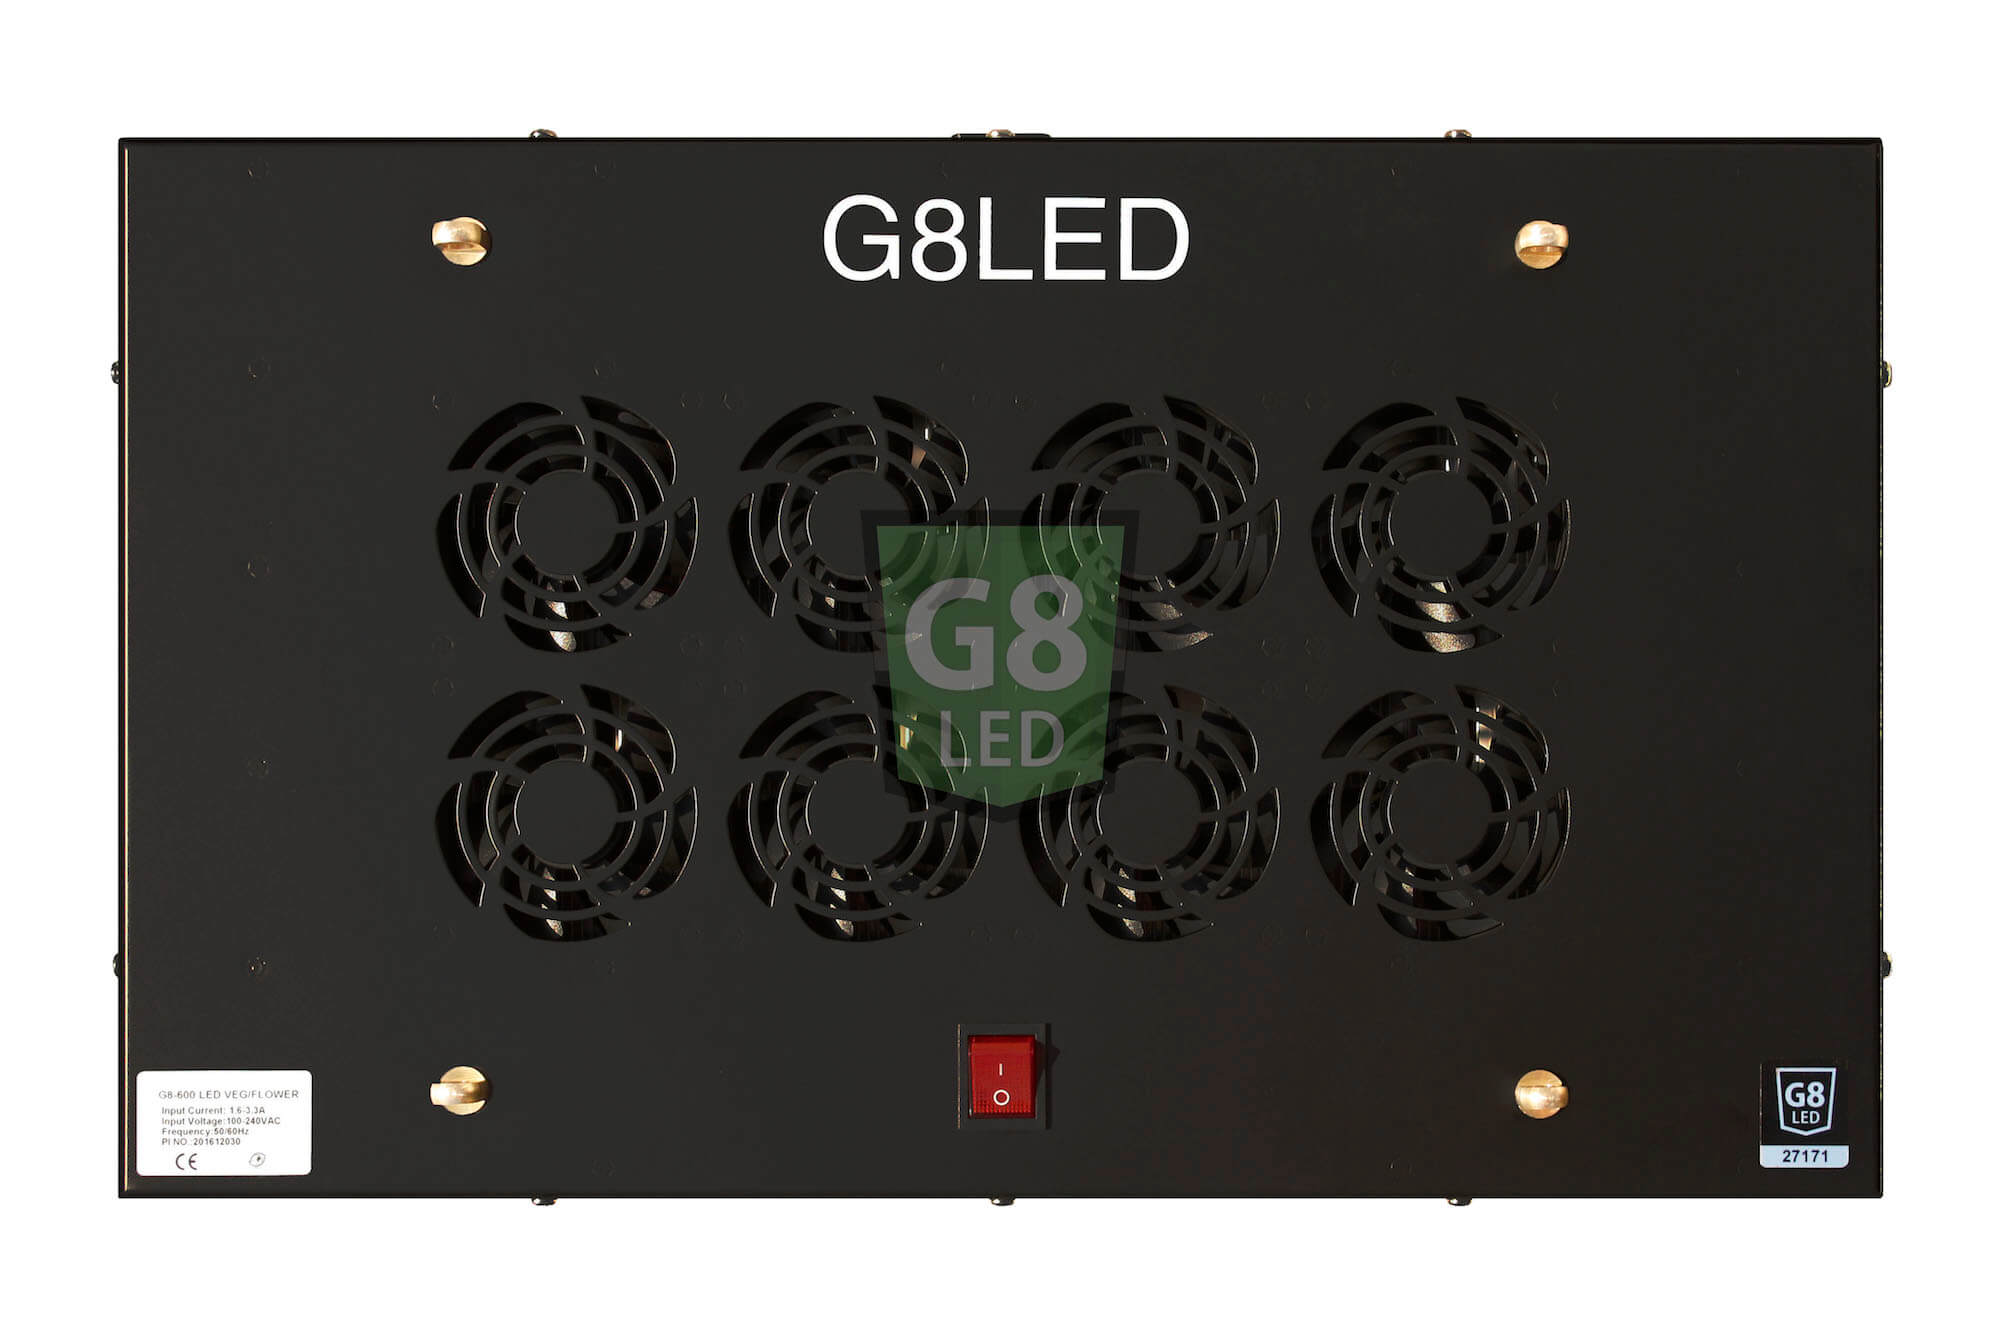 G8LED 600 Watt LED Grow Light Kit